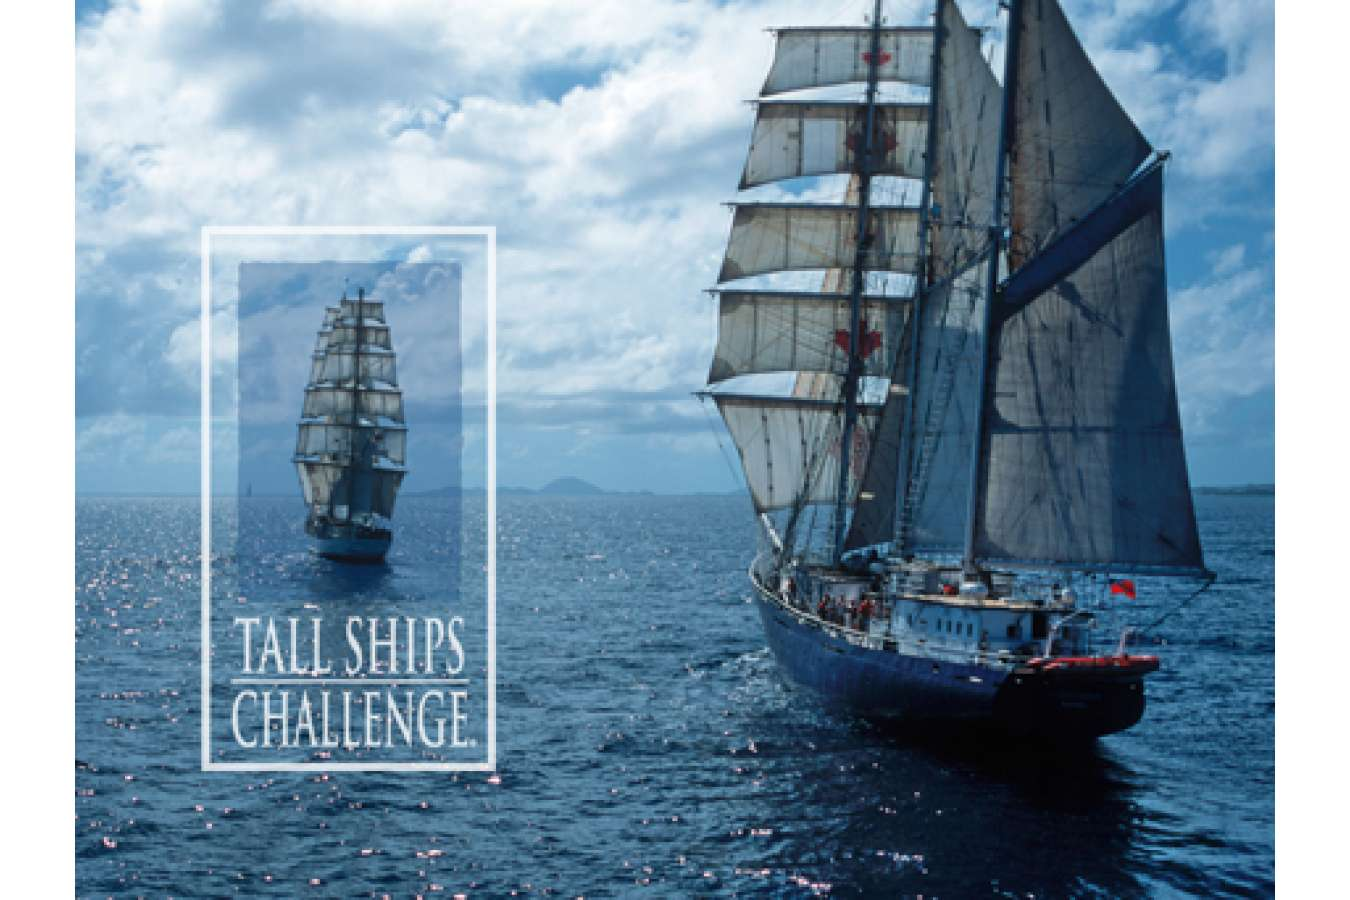 Asta 1 PREVP ship logos : ASTA Tall Ship Challenge is a series of sail training races in North America